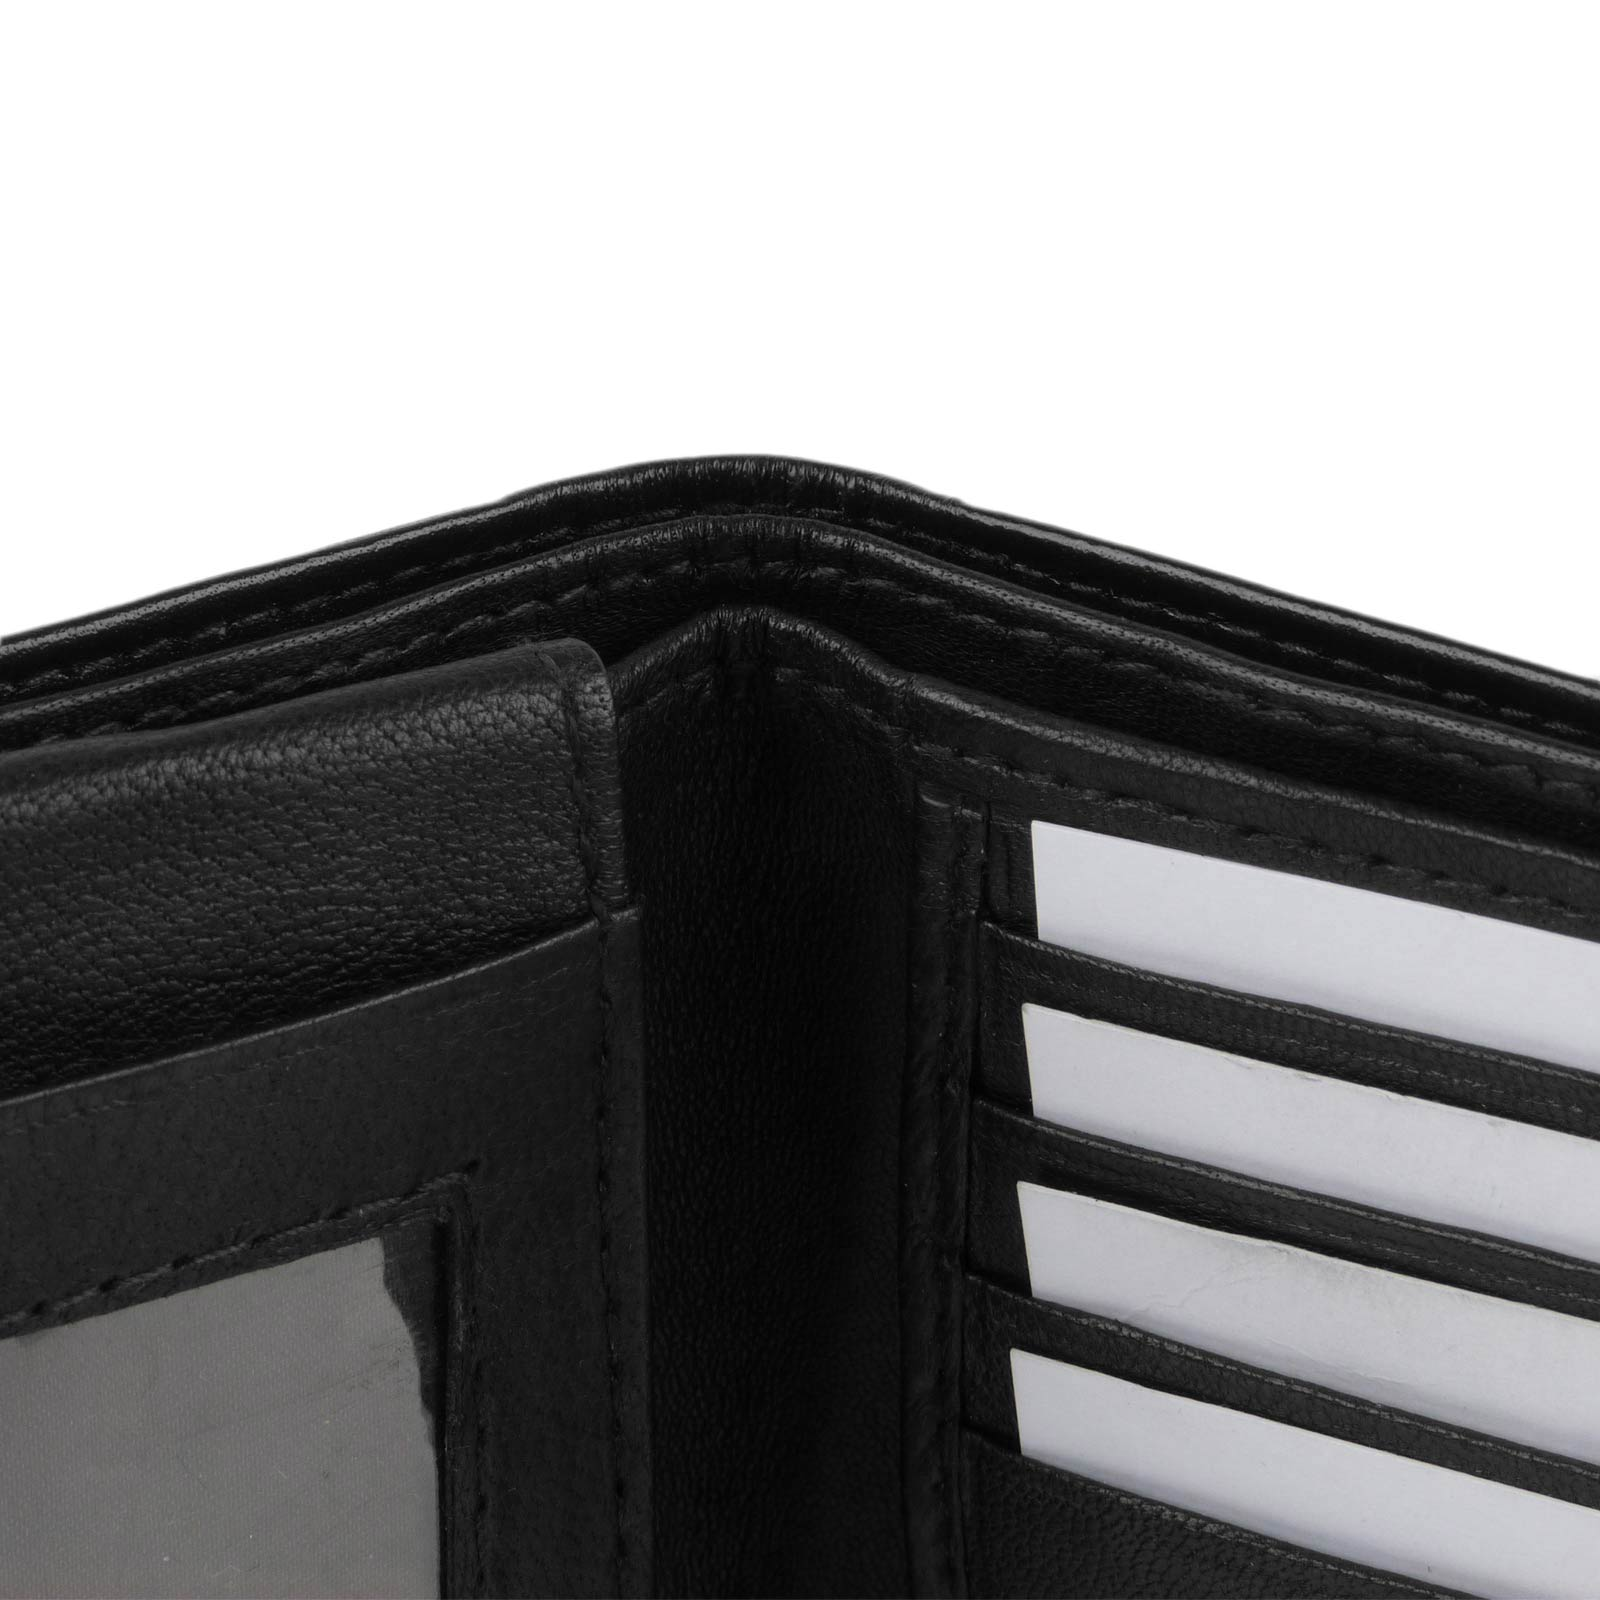 Mens-Quality-Soft-Nappa-LEATHER-Bi-Fold-Wallet-by-Oakridge thumbnail 6